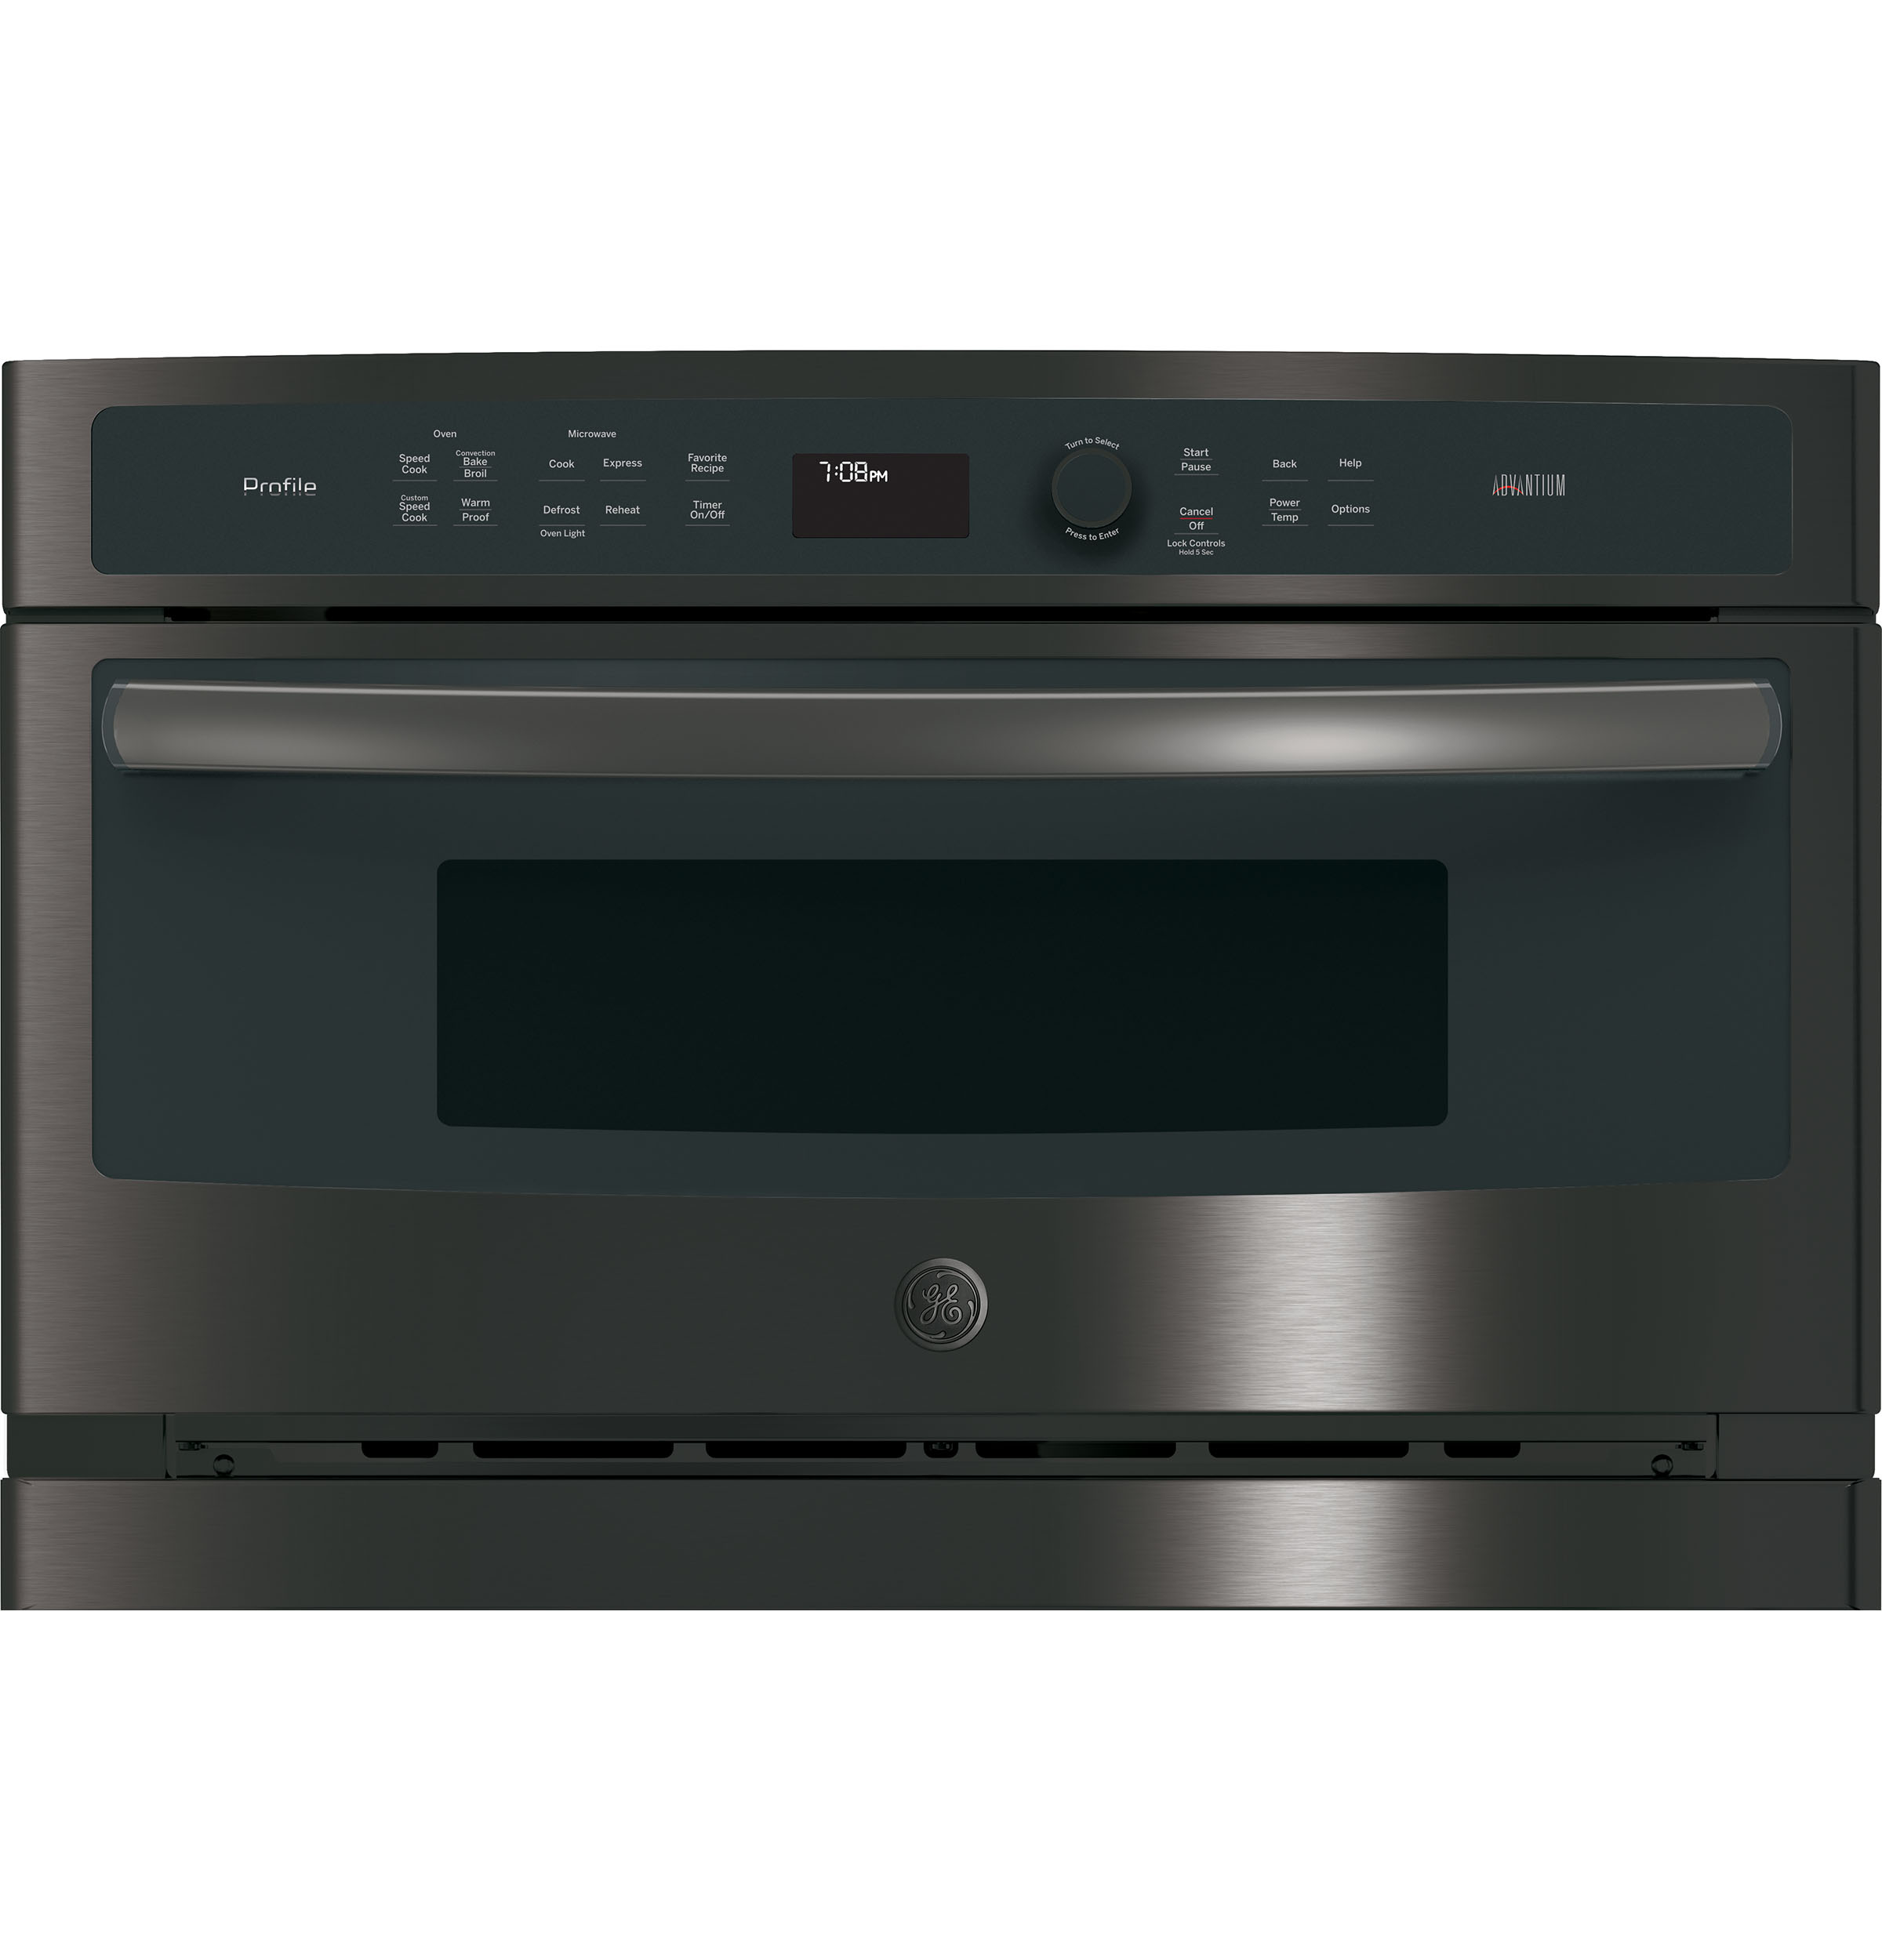 GE Profile GE Profile™ Series 30 in. Single Wall Oven with Advantium® Technology